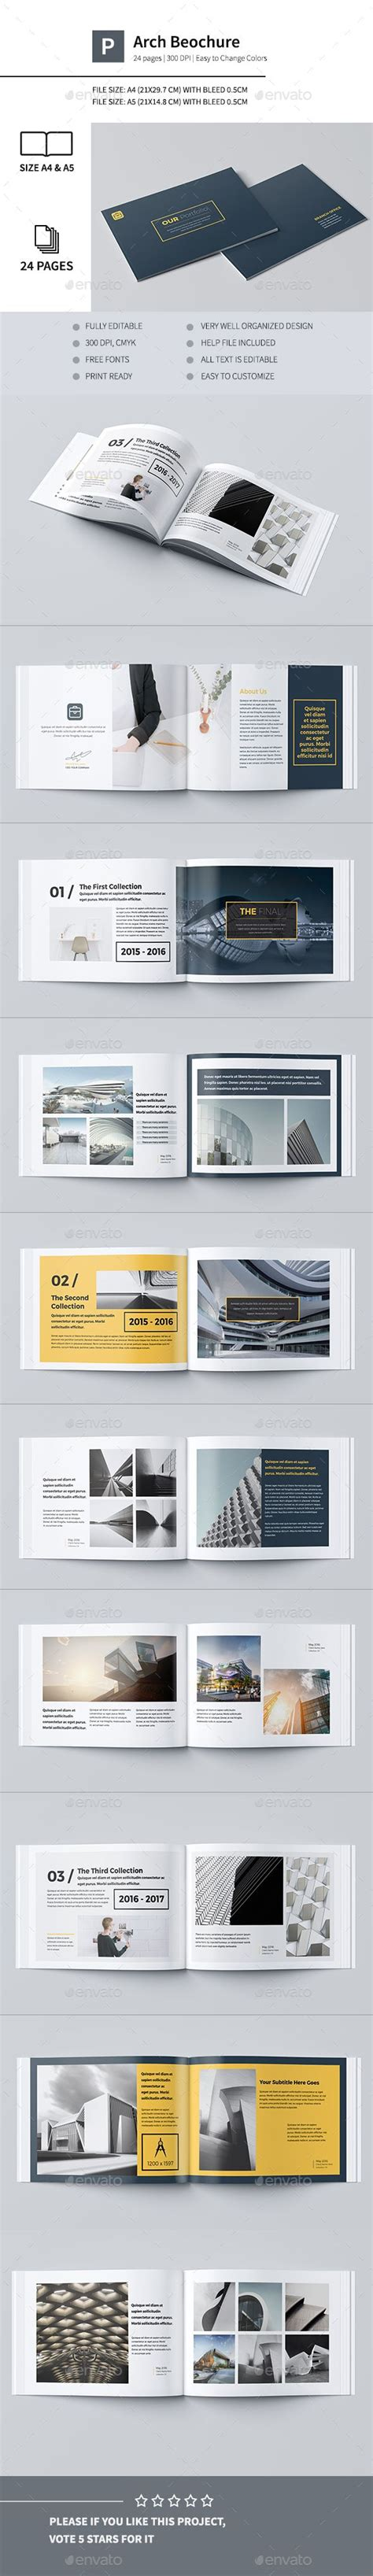 layout portfolio a4 our portfolio architecture 24 pages a4 a5 more